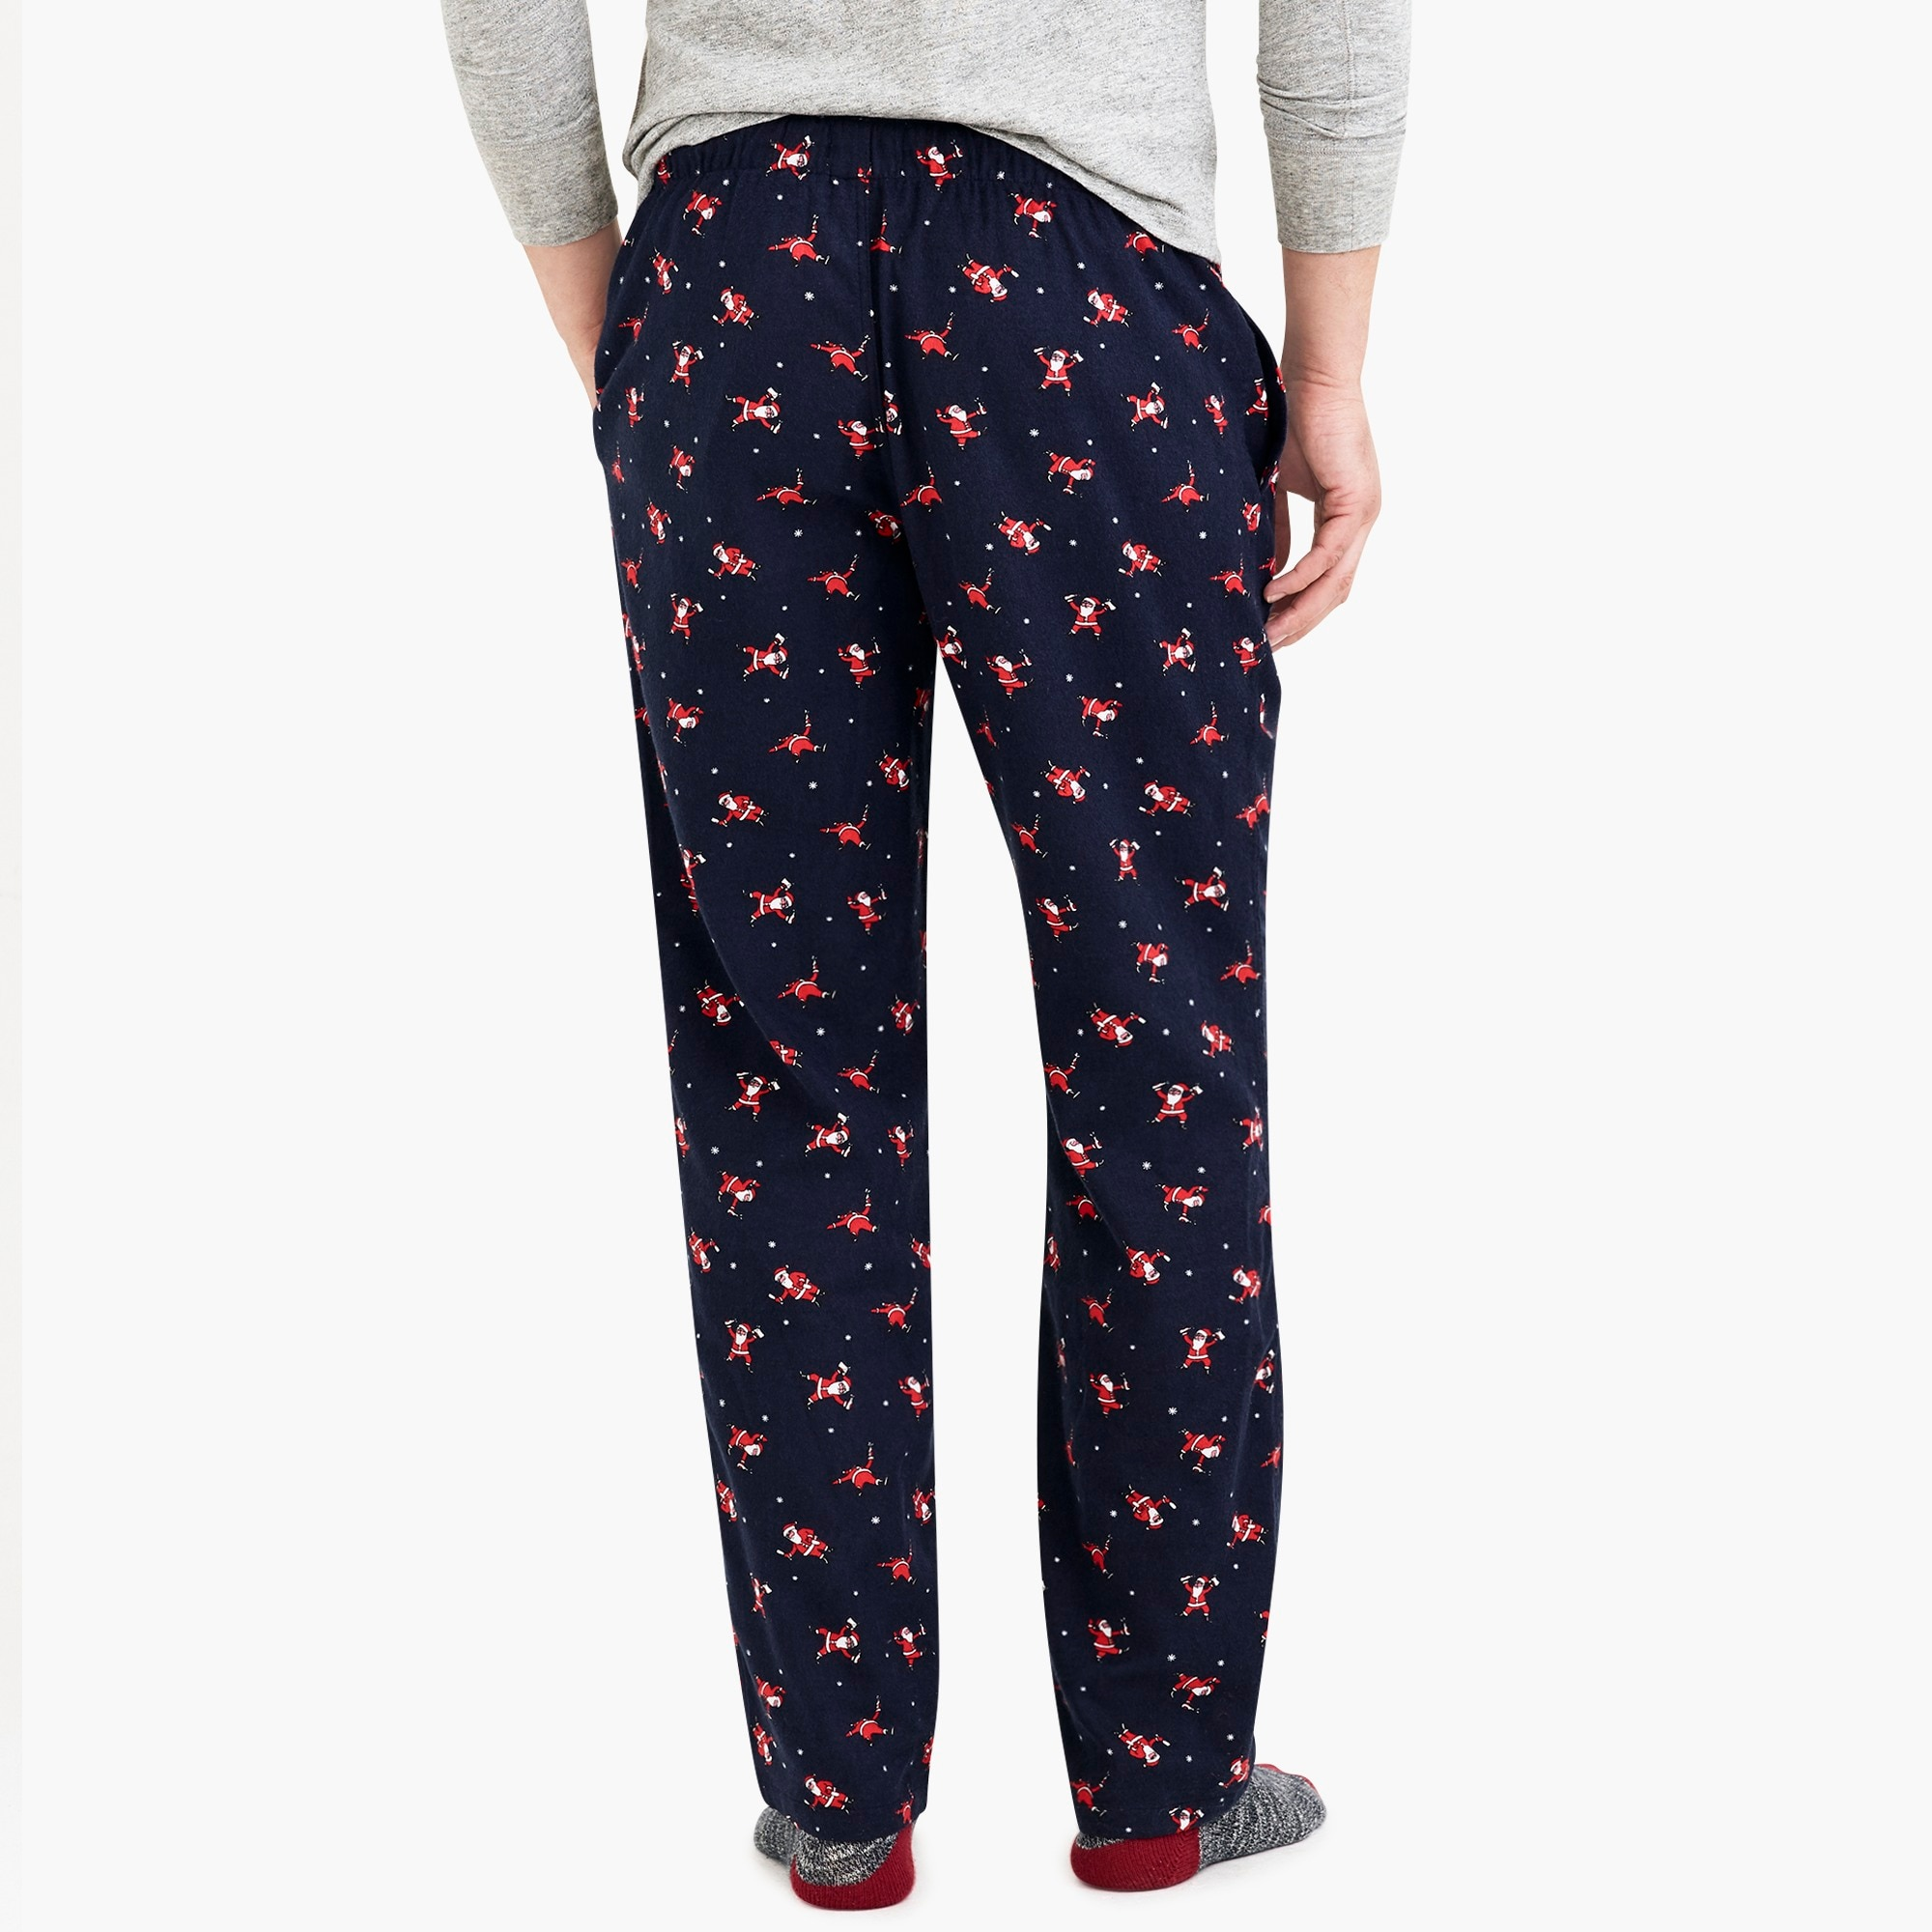 Image 3 for Flannel pajama pant with santa print